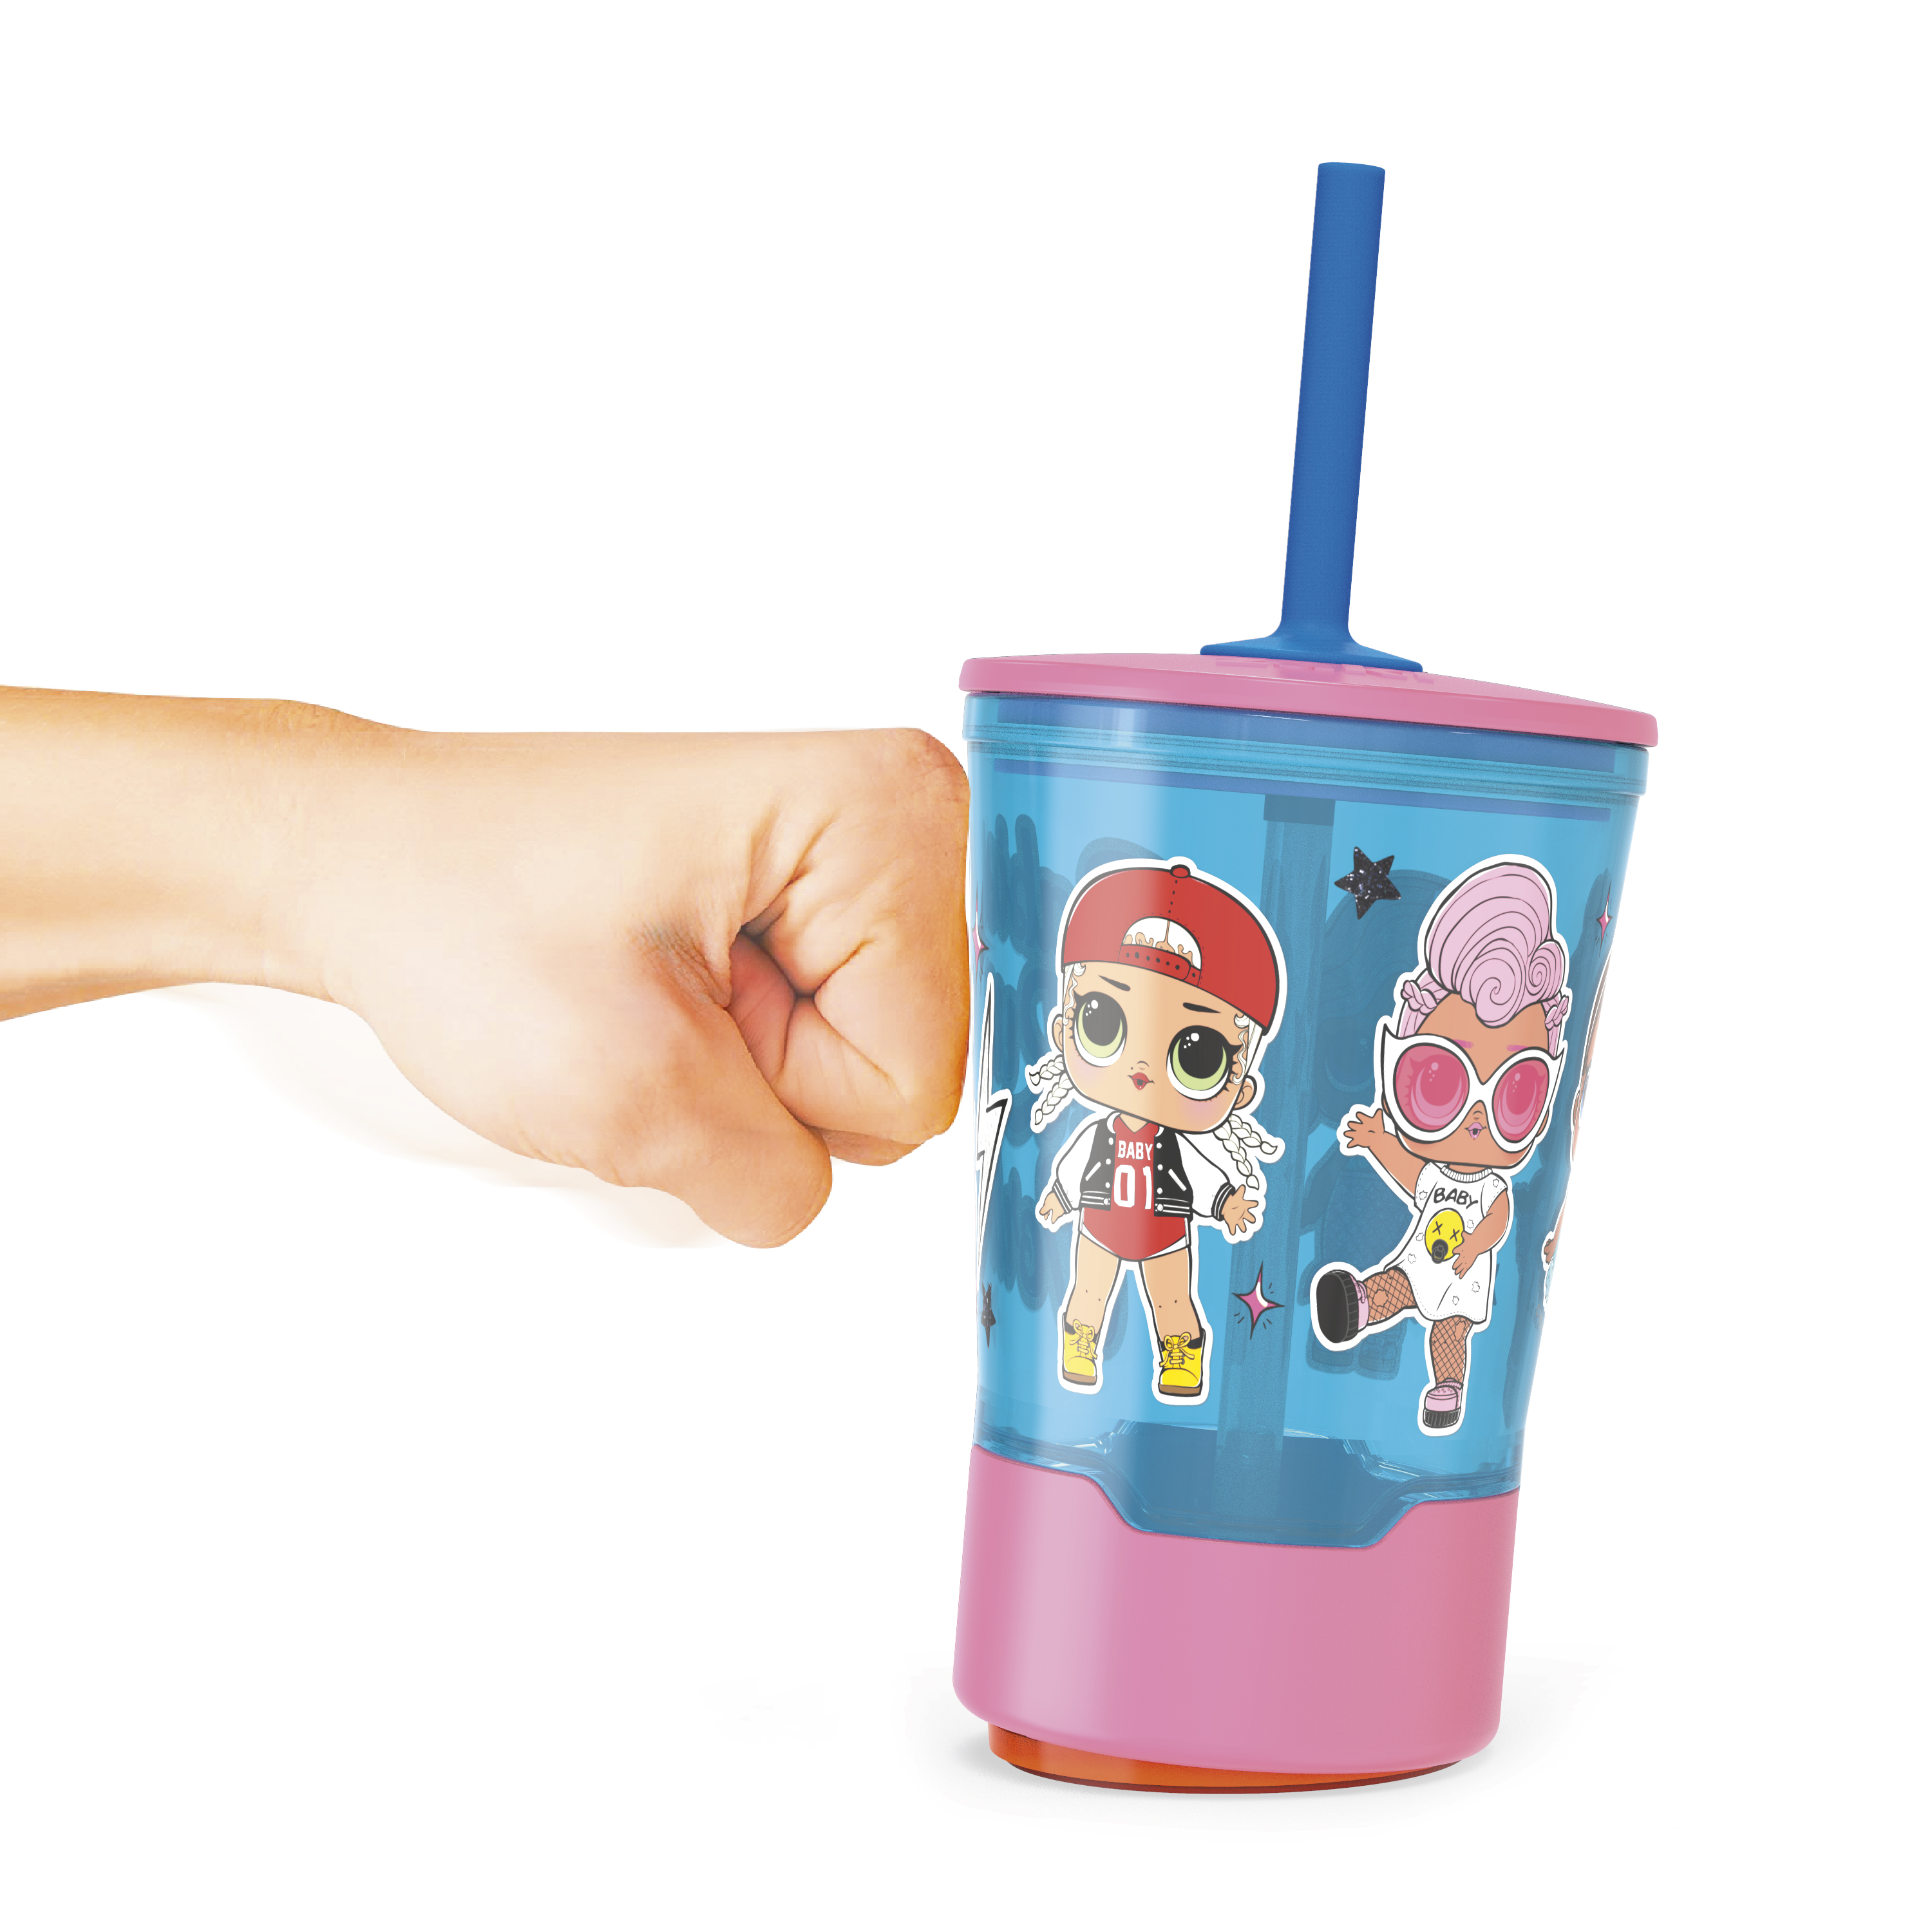 LOL Surprise 16 ounce Mighty Mug Tumbler with Straw, Babies Run the World slideshow image 1